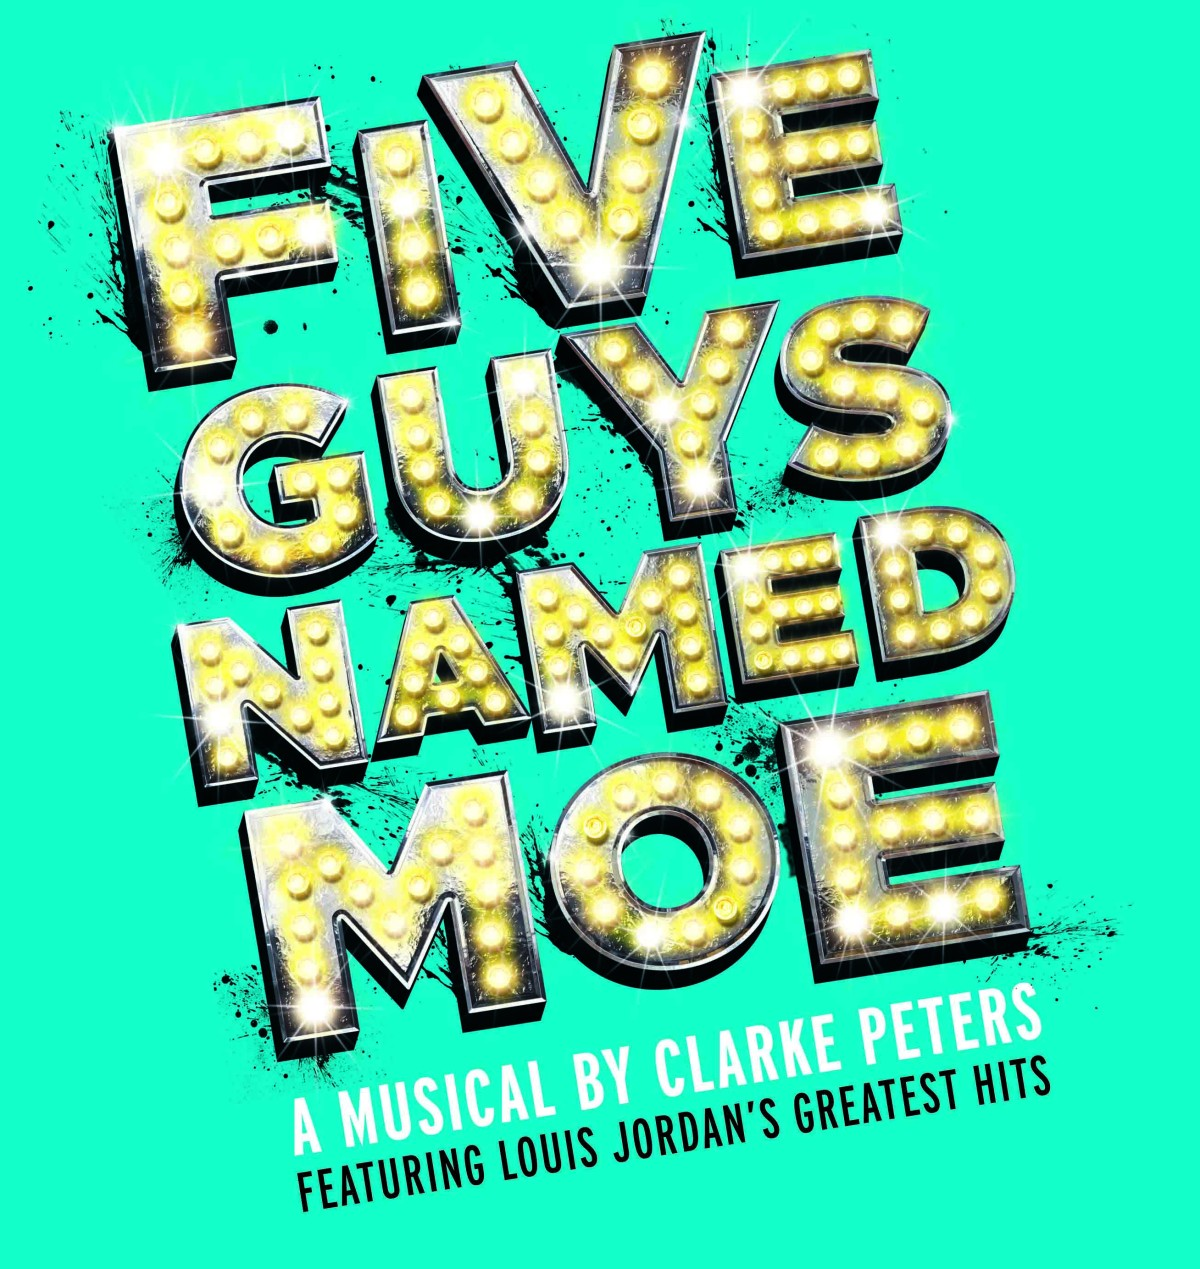 Five Guys Named Moe will open in September 2017 in Marble Arch.